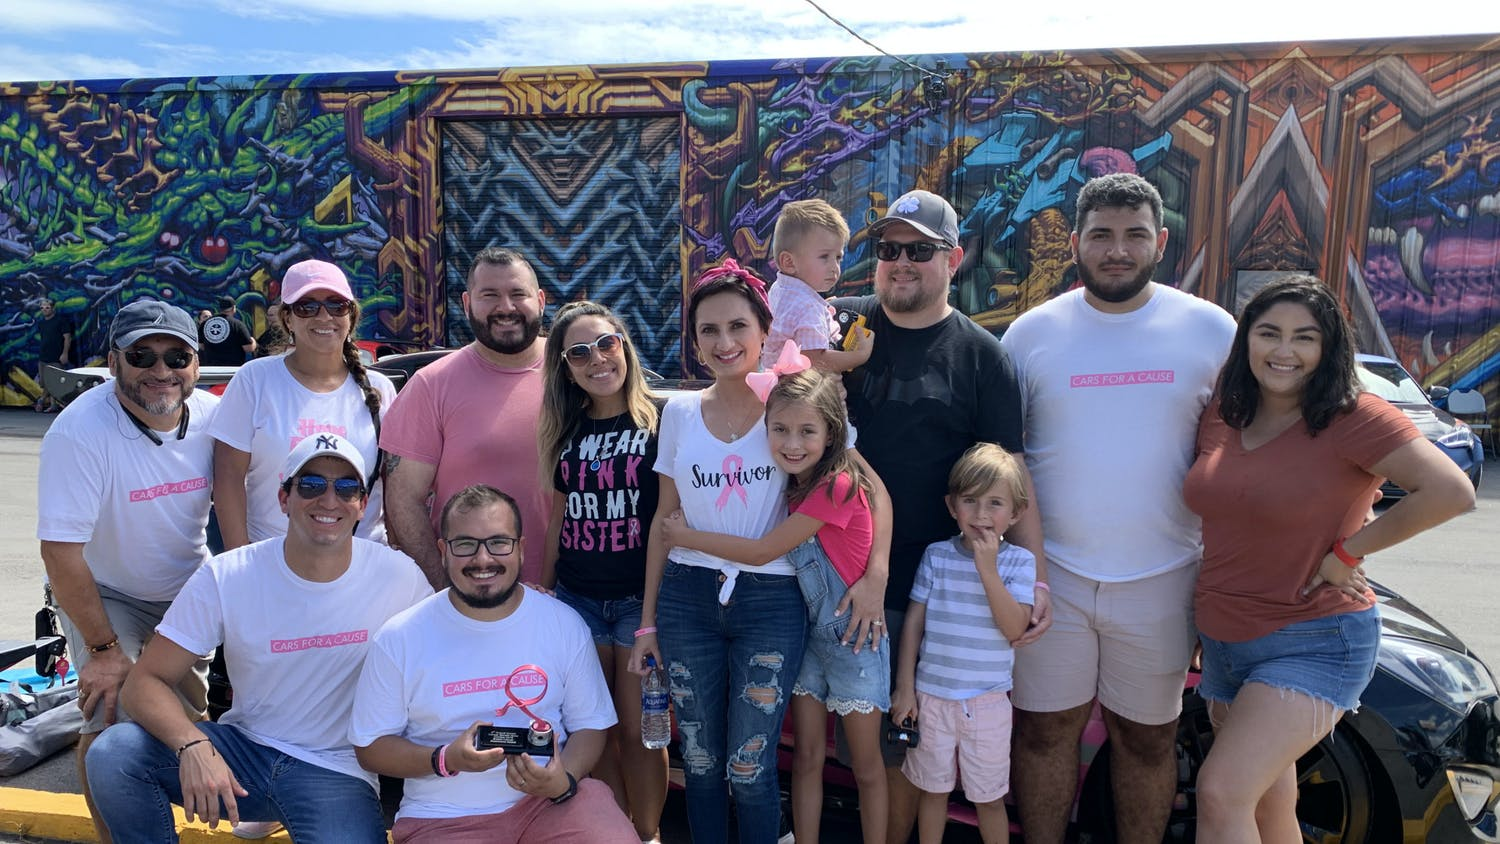 Michele Altomare (second from left) and Juan Reina (third from left), kneel on the ground as they pose with family and friends for a photograph during the third annual Breast Cancer Awareness Show in Tampa, Florida, where they raised awareness for cancer research on Sunday, October 13, 2019.